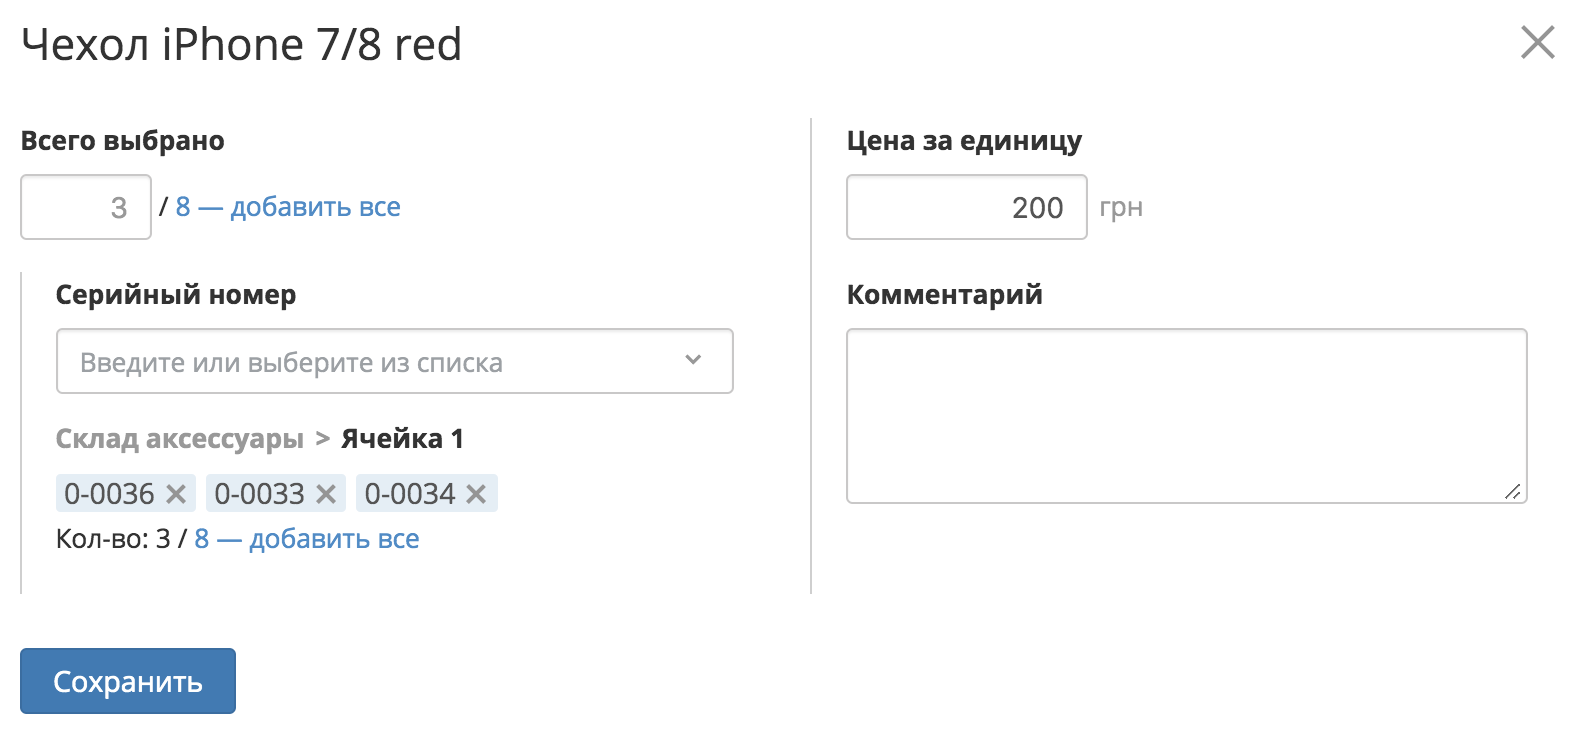 serial-goods-editing.png (24 KB)